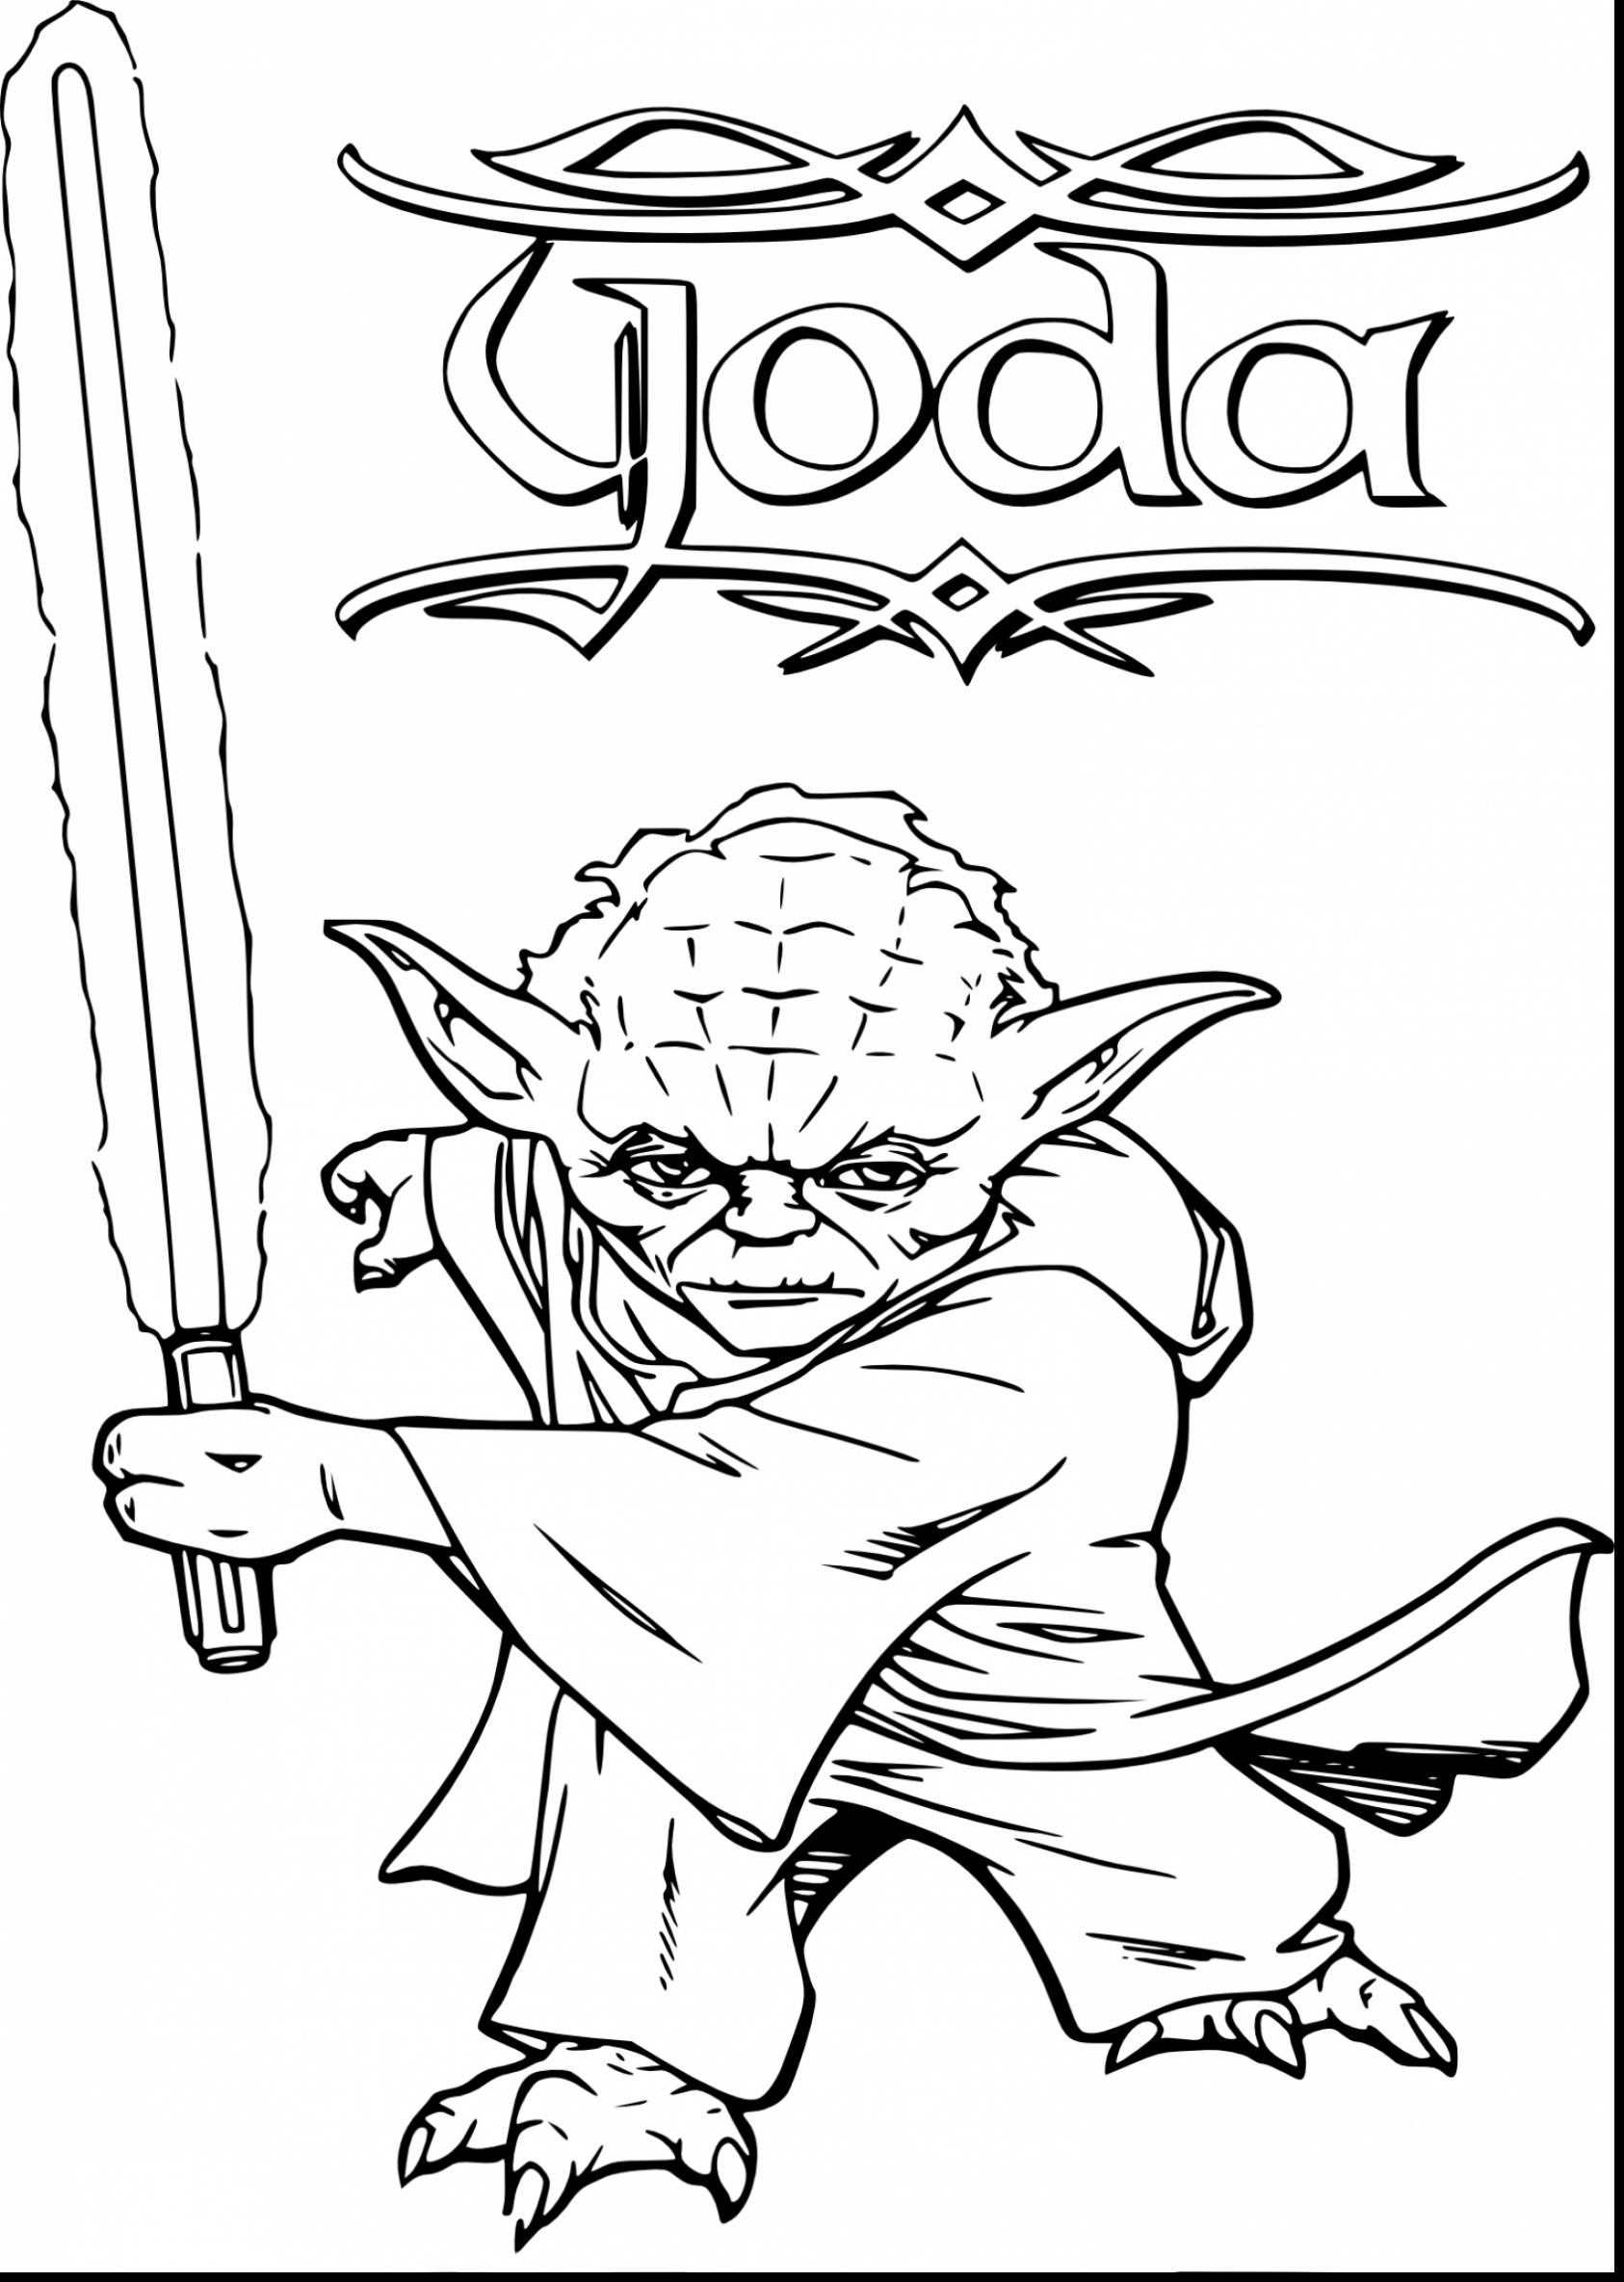 Printable Lego Star Wars Yoda Coloring Pages Printable to Pretty Printable Of Fresh Star Wars Coloring Pages to Print